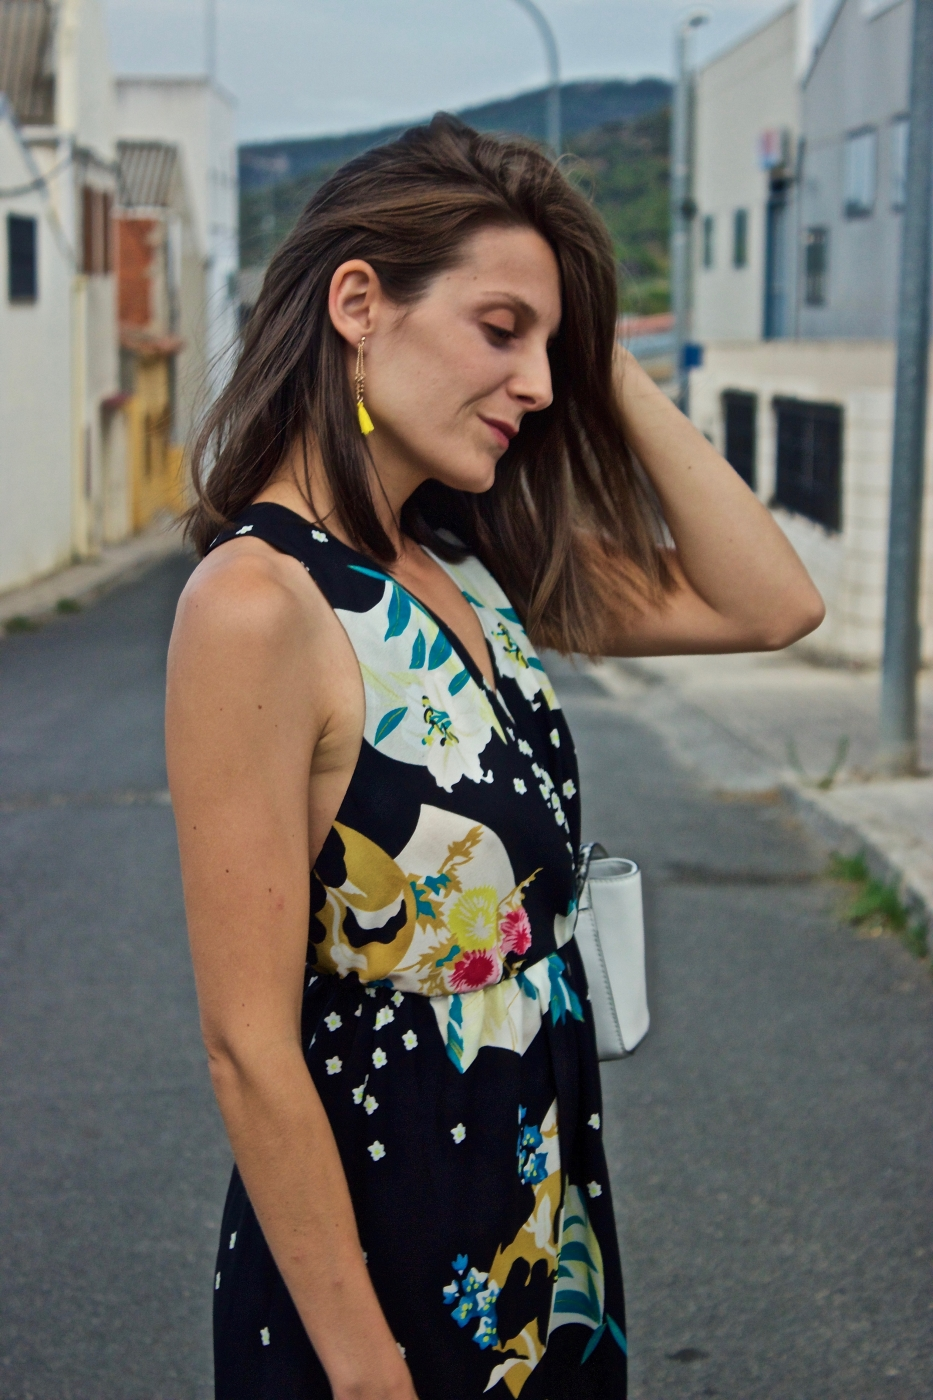 lara-vazquez-madlula-fashionblog-moda-streetstyle-summer-long-dress